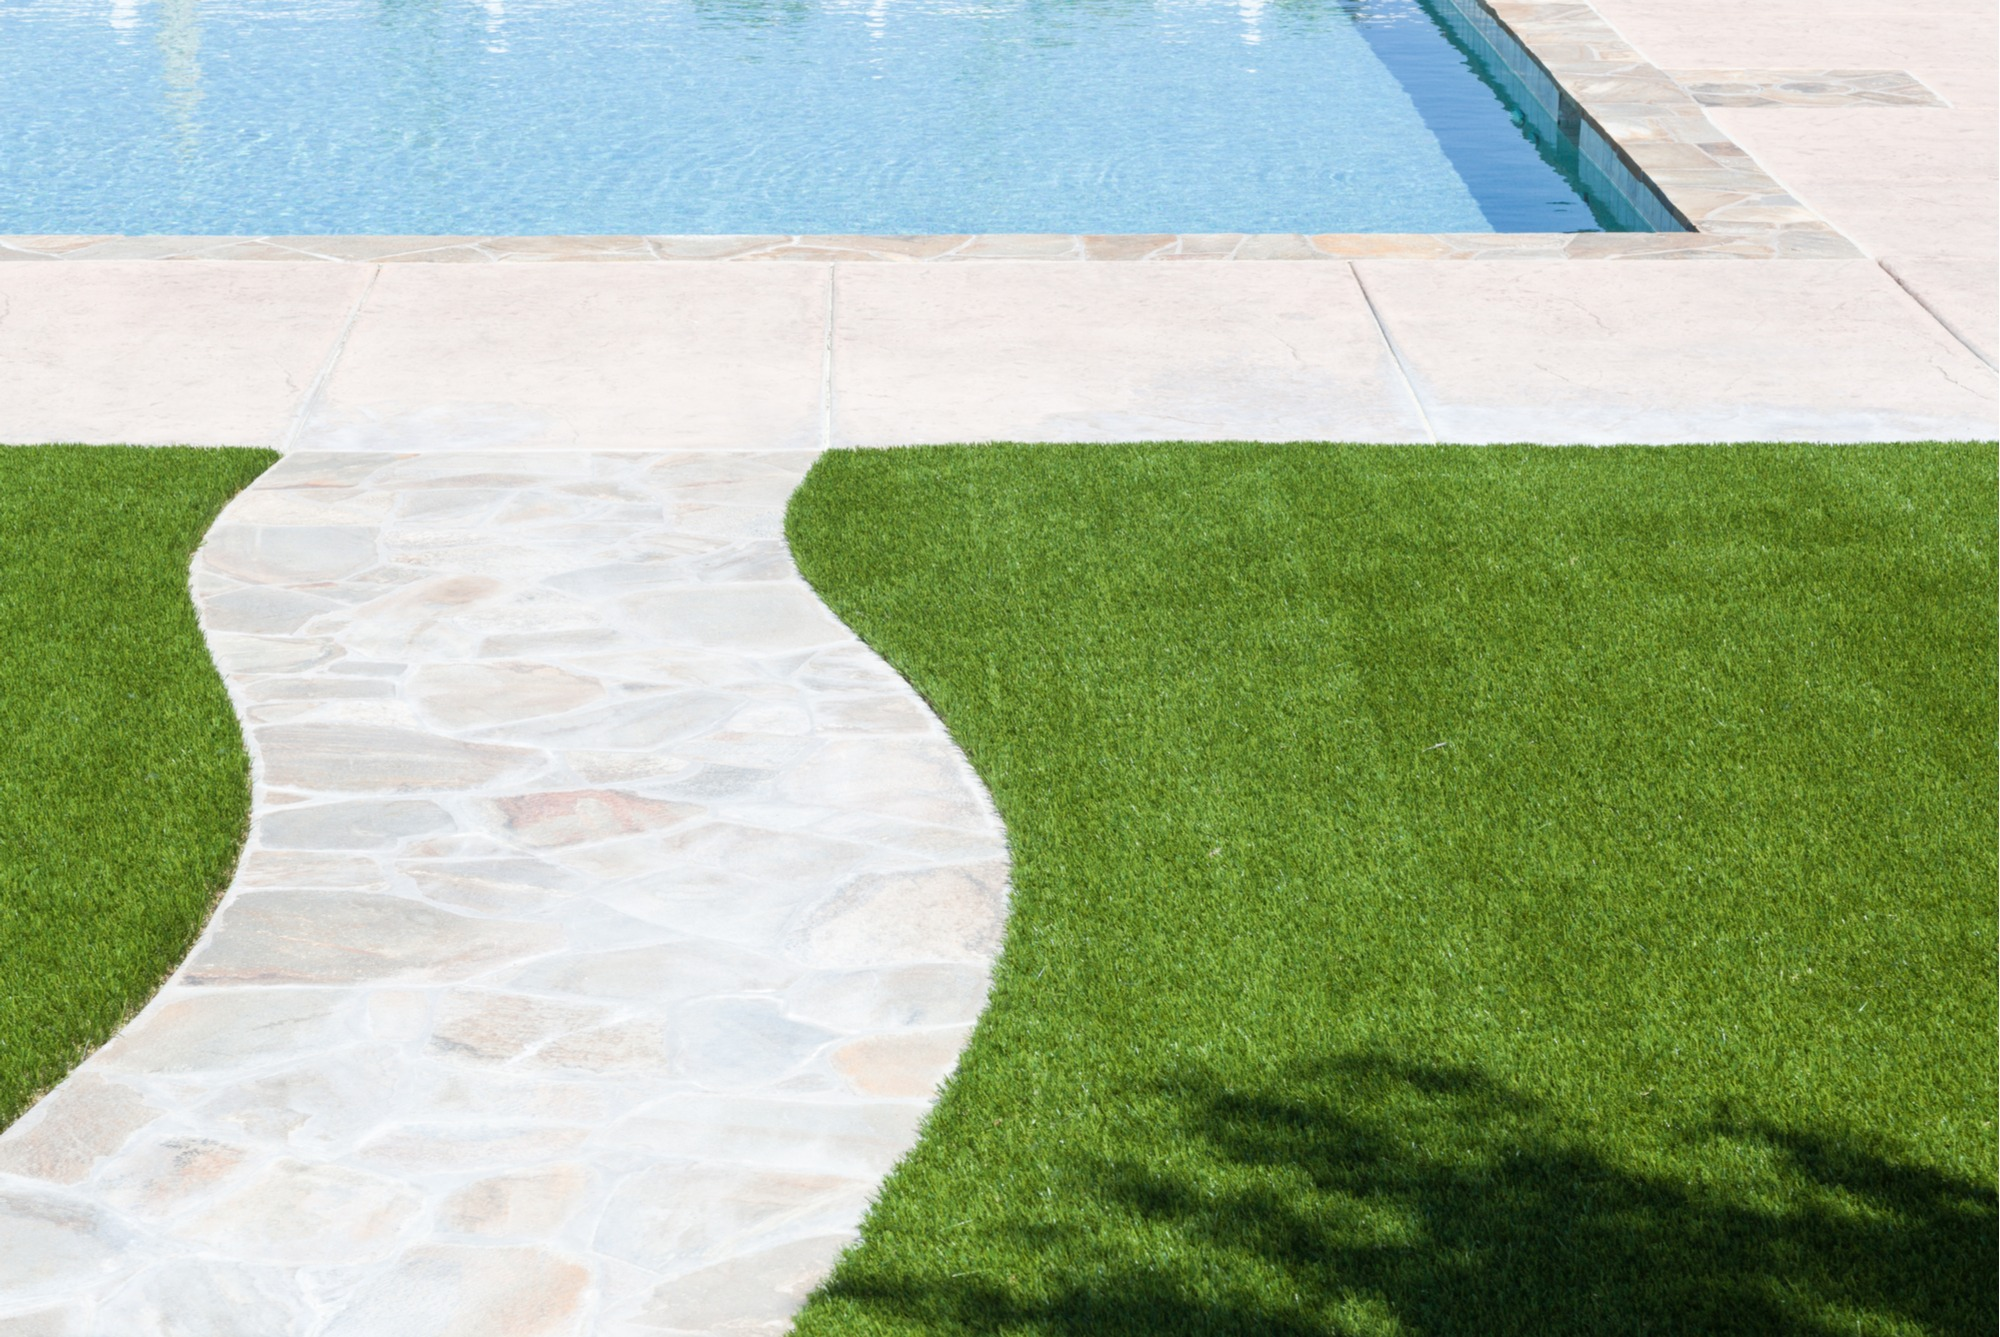 Can I Install Artificial Grass on Top of Real Grass